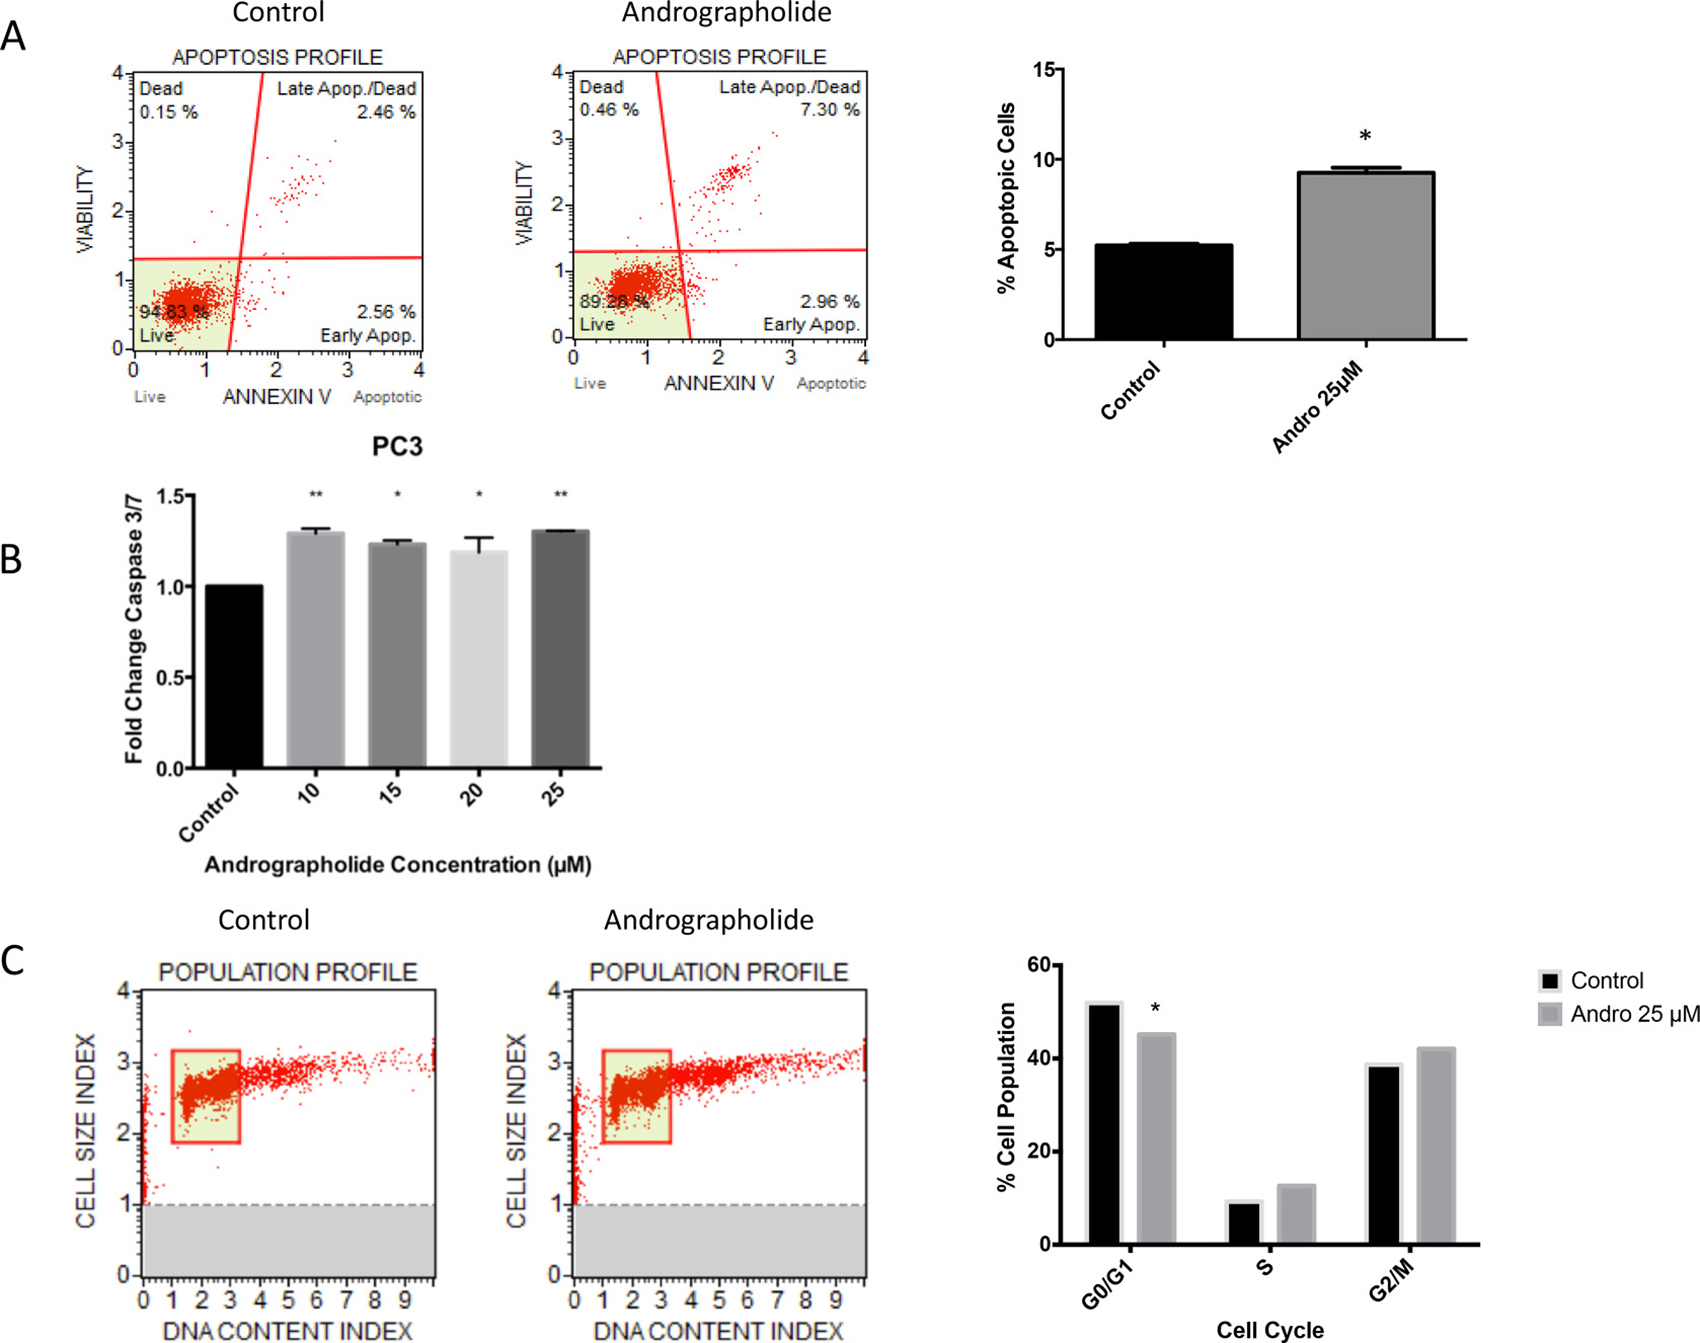 Andrographolide increased apoptosis and decreased cell cycle in PC3 cells.